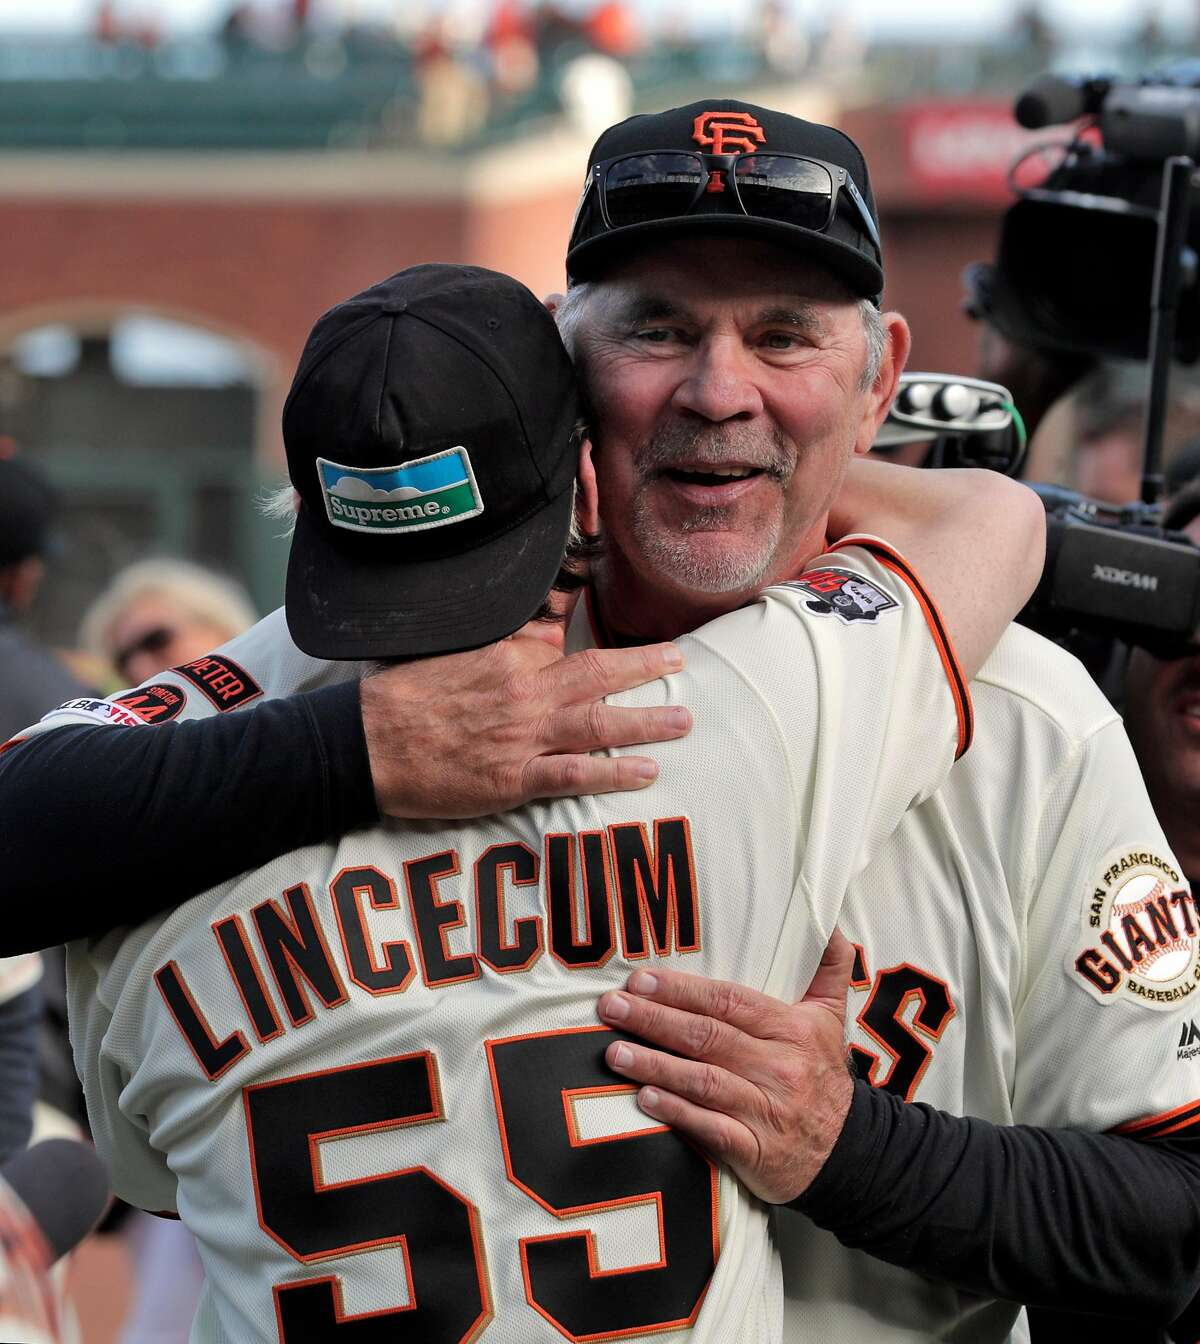 Giants manager Bruce Bochy hugs Tim Lincecum followning an onfield ceremony honoring Bochy after managed his final game with the San Francisco Giants at Oracle Park in San Francisco, Calif., on Sunday, September 29, 2019.